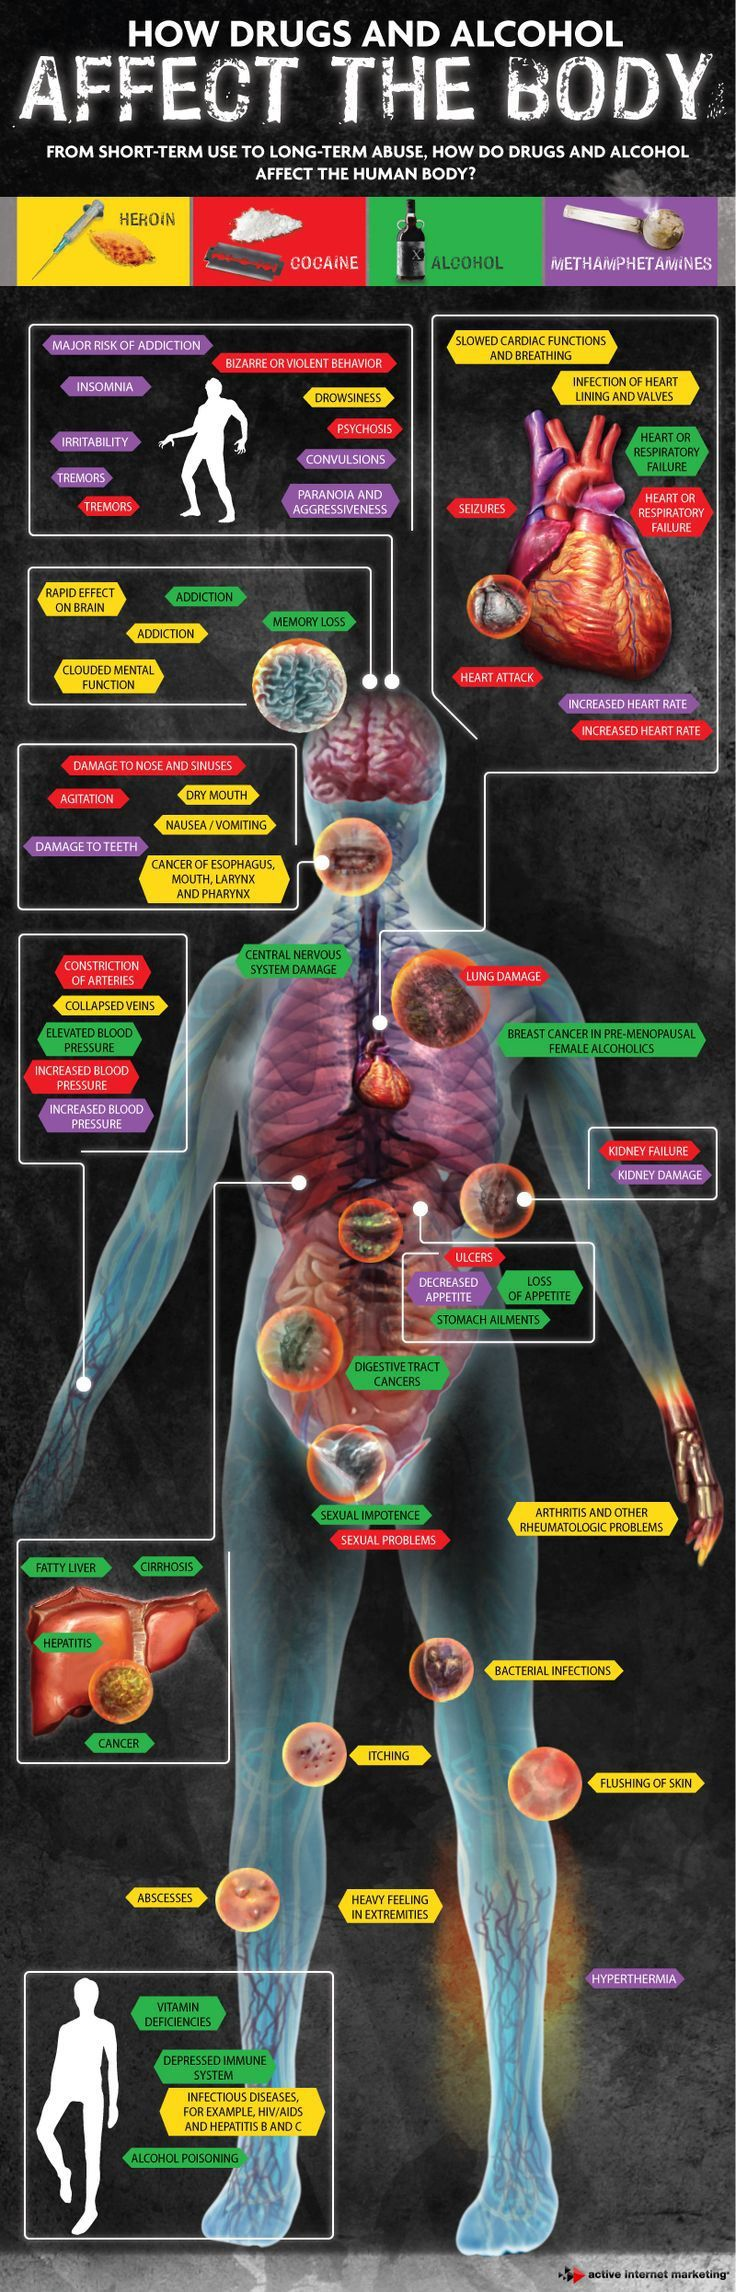 how drugs affect the mind and body How tobacco affects your body brain nicotine, the drug that makes tobacco addictive, goes to your brain very quickly nicotine makes you feel good when you are smoking, but it can make you anxious, nervous, moody, and depressed after you smoke using tobacco can cause headaches and dizziness mouth tobacco stains your teeth and.